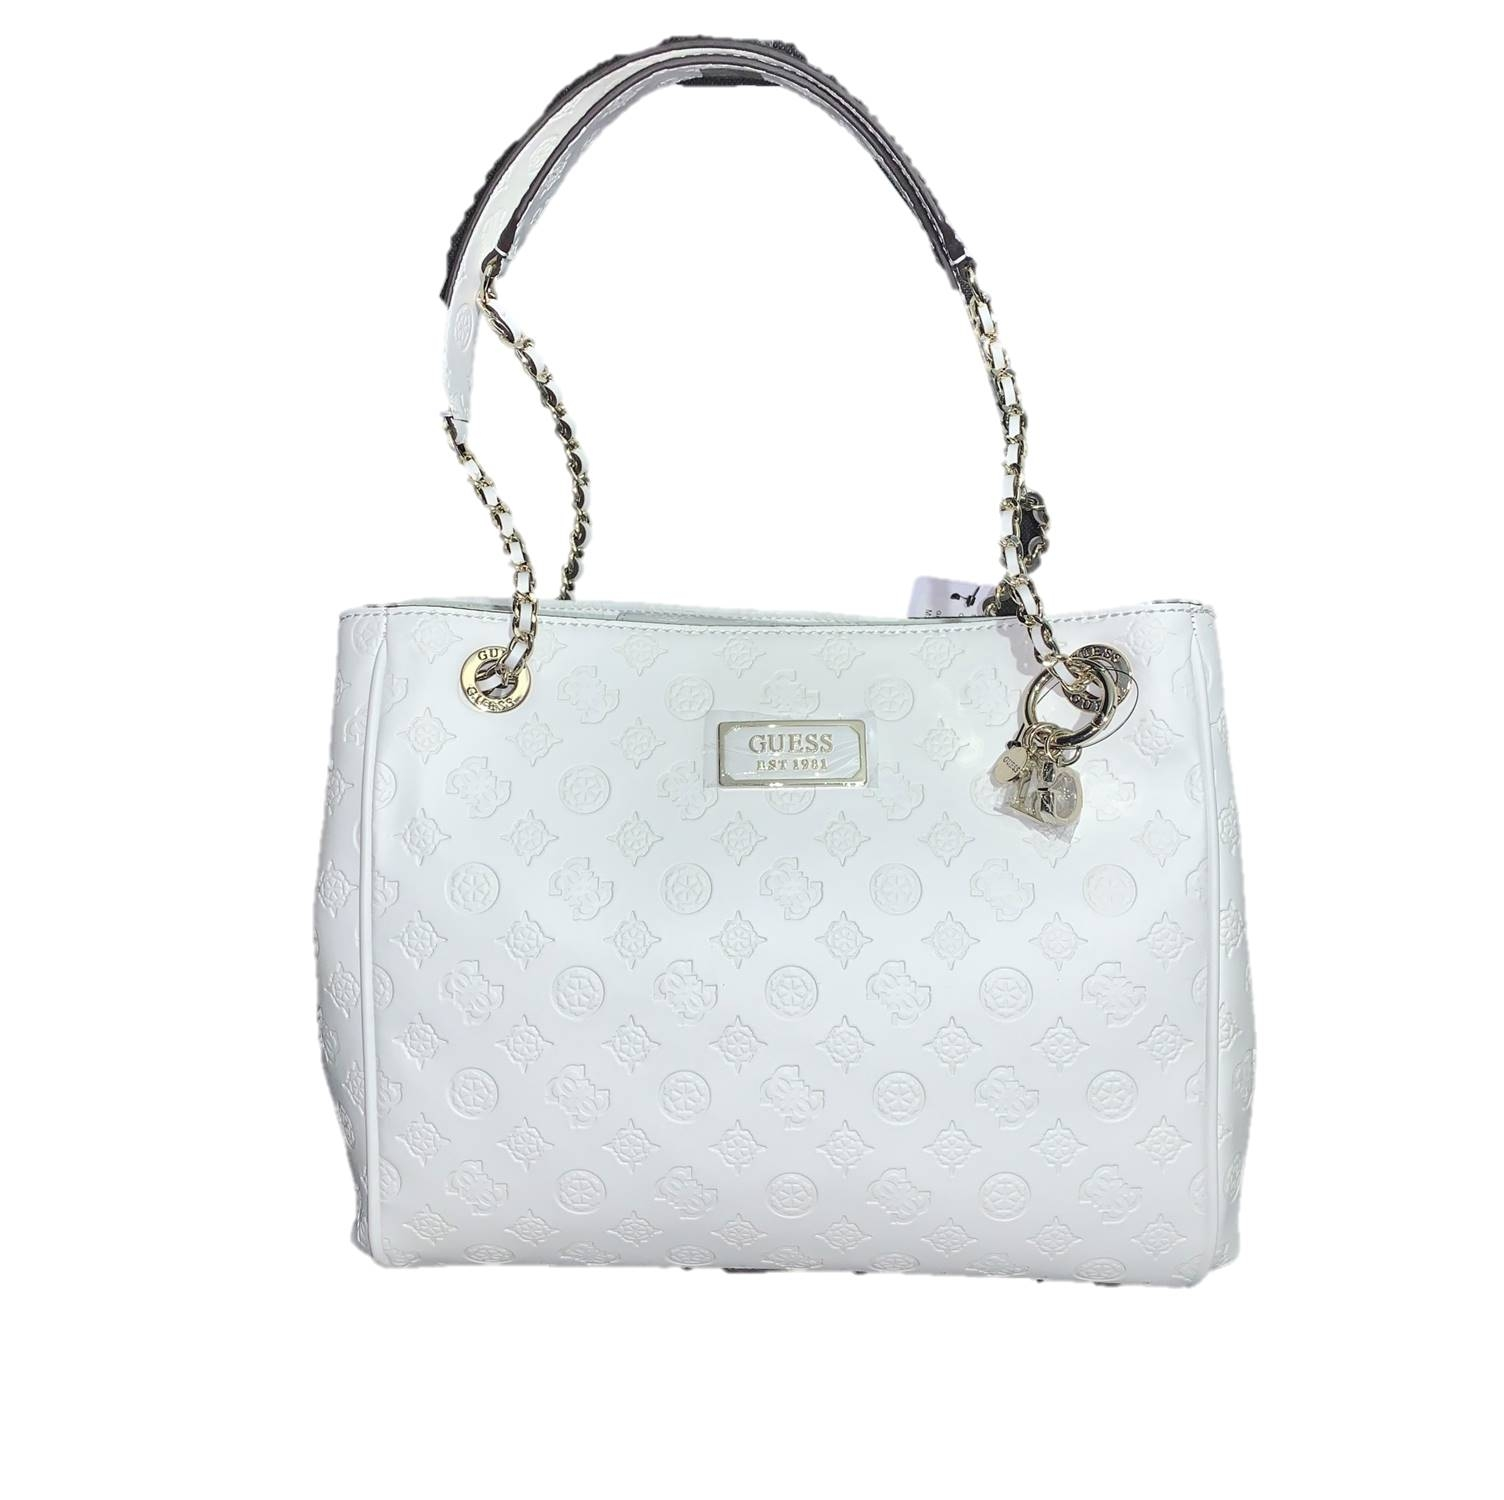 Borsa donna guess nuova | Posot Class